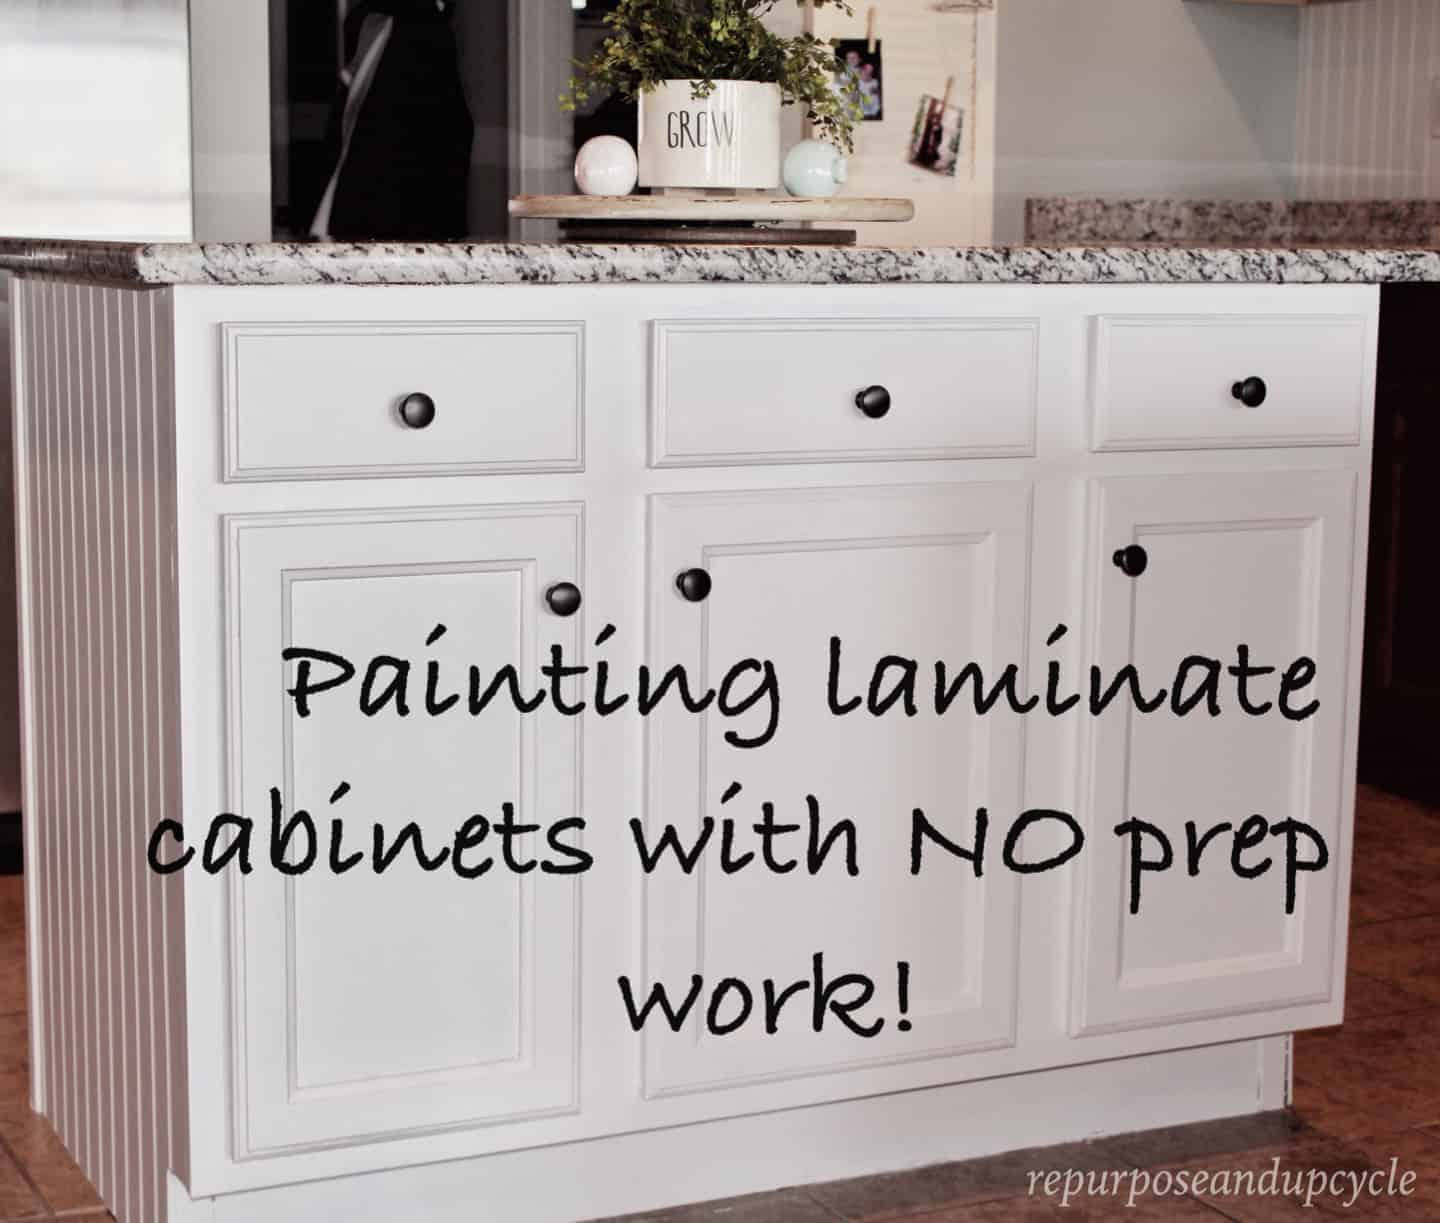 Painting Laminate Cabinets with NO prep work!